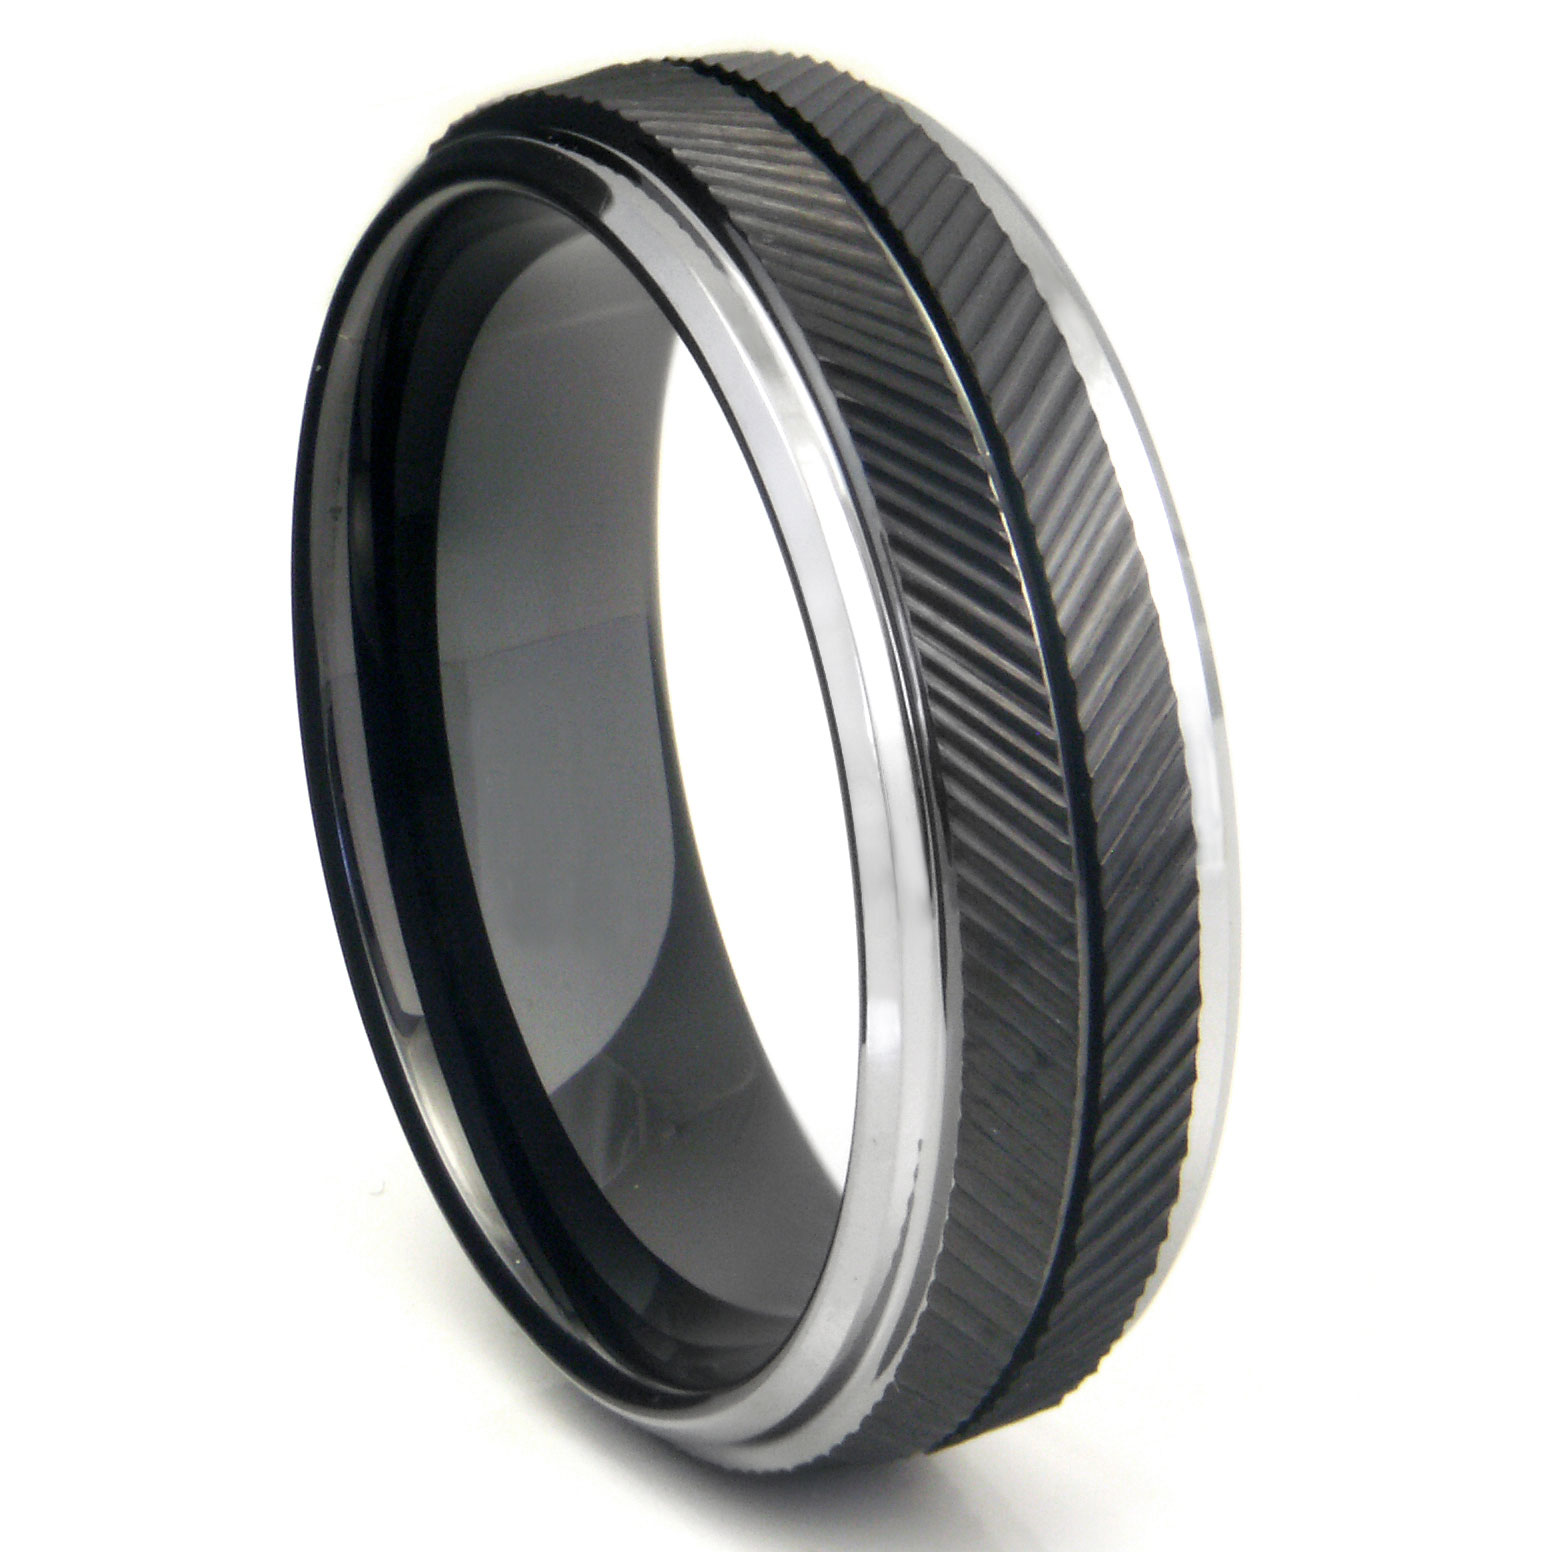 Tungsten Black Engagement Rings & Black Wedding Rings For those that want to be different, one of our hottest selling styles include our tungsten black wedding rings and black engagement rings. We carry both shiny polished black rings as well as brushed finish .